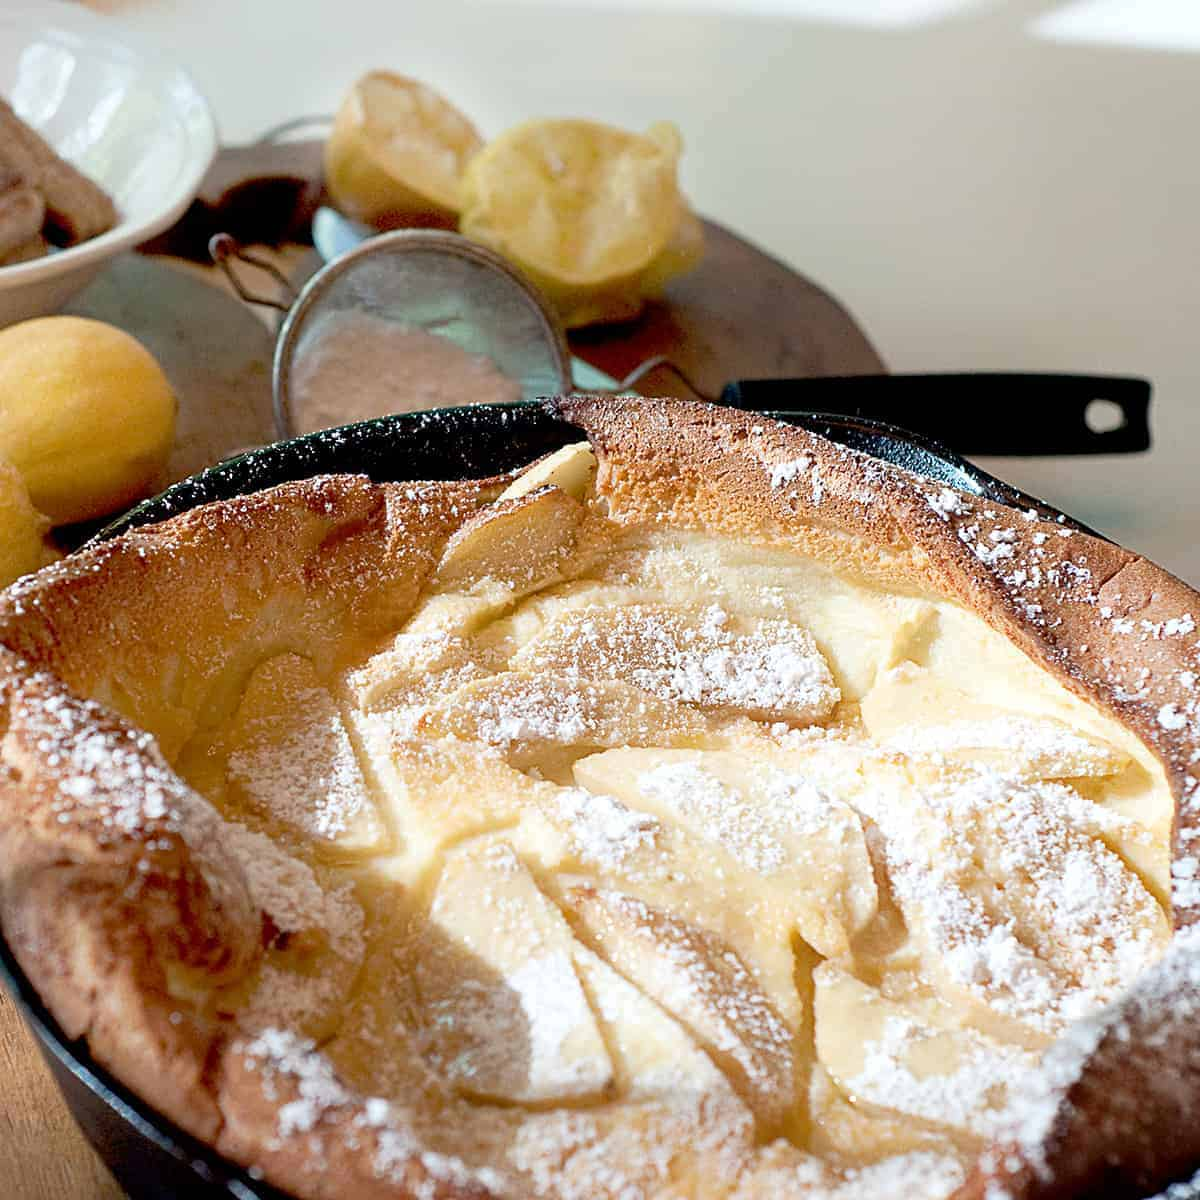 A light fluffy Dutch baby is just a big pancake cooked in the oven! Topped with lemon juice and powdered sugar, this breakfast treat is simply delicious. From @NevrEnoughThyme https://www.lanascooking.com/dutch-baby/